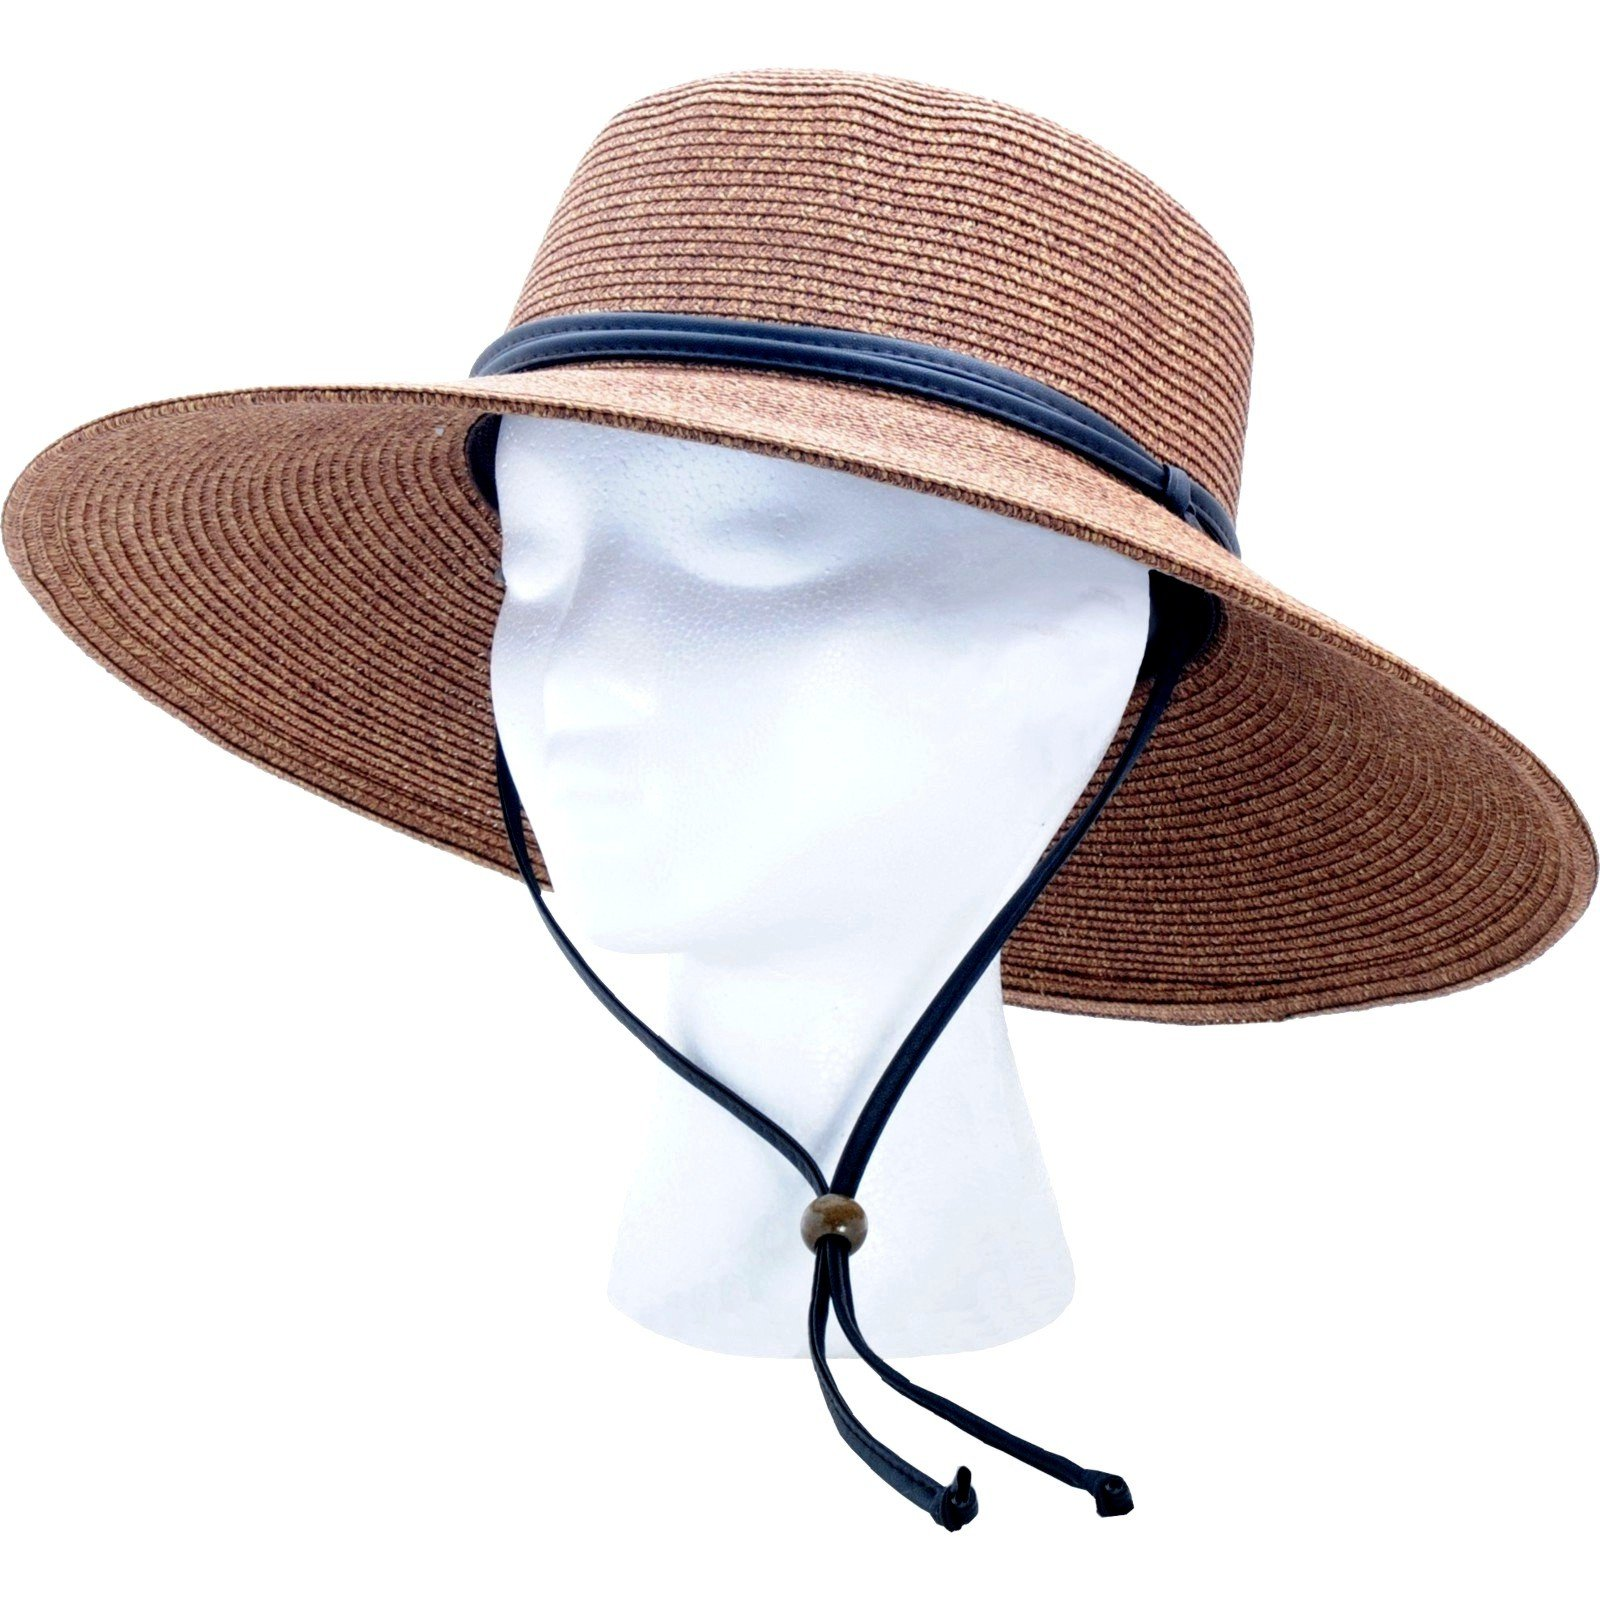 Sloggers Women's  Wide Brim Braided Sun Hat with Wind Lanyard - Dark Brown -  UPF 50+  Maximum Sun Protection, Style 442DB01 by Sloggers